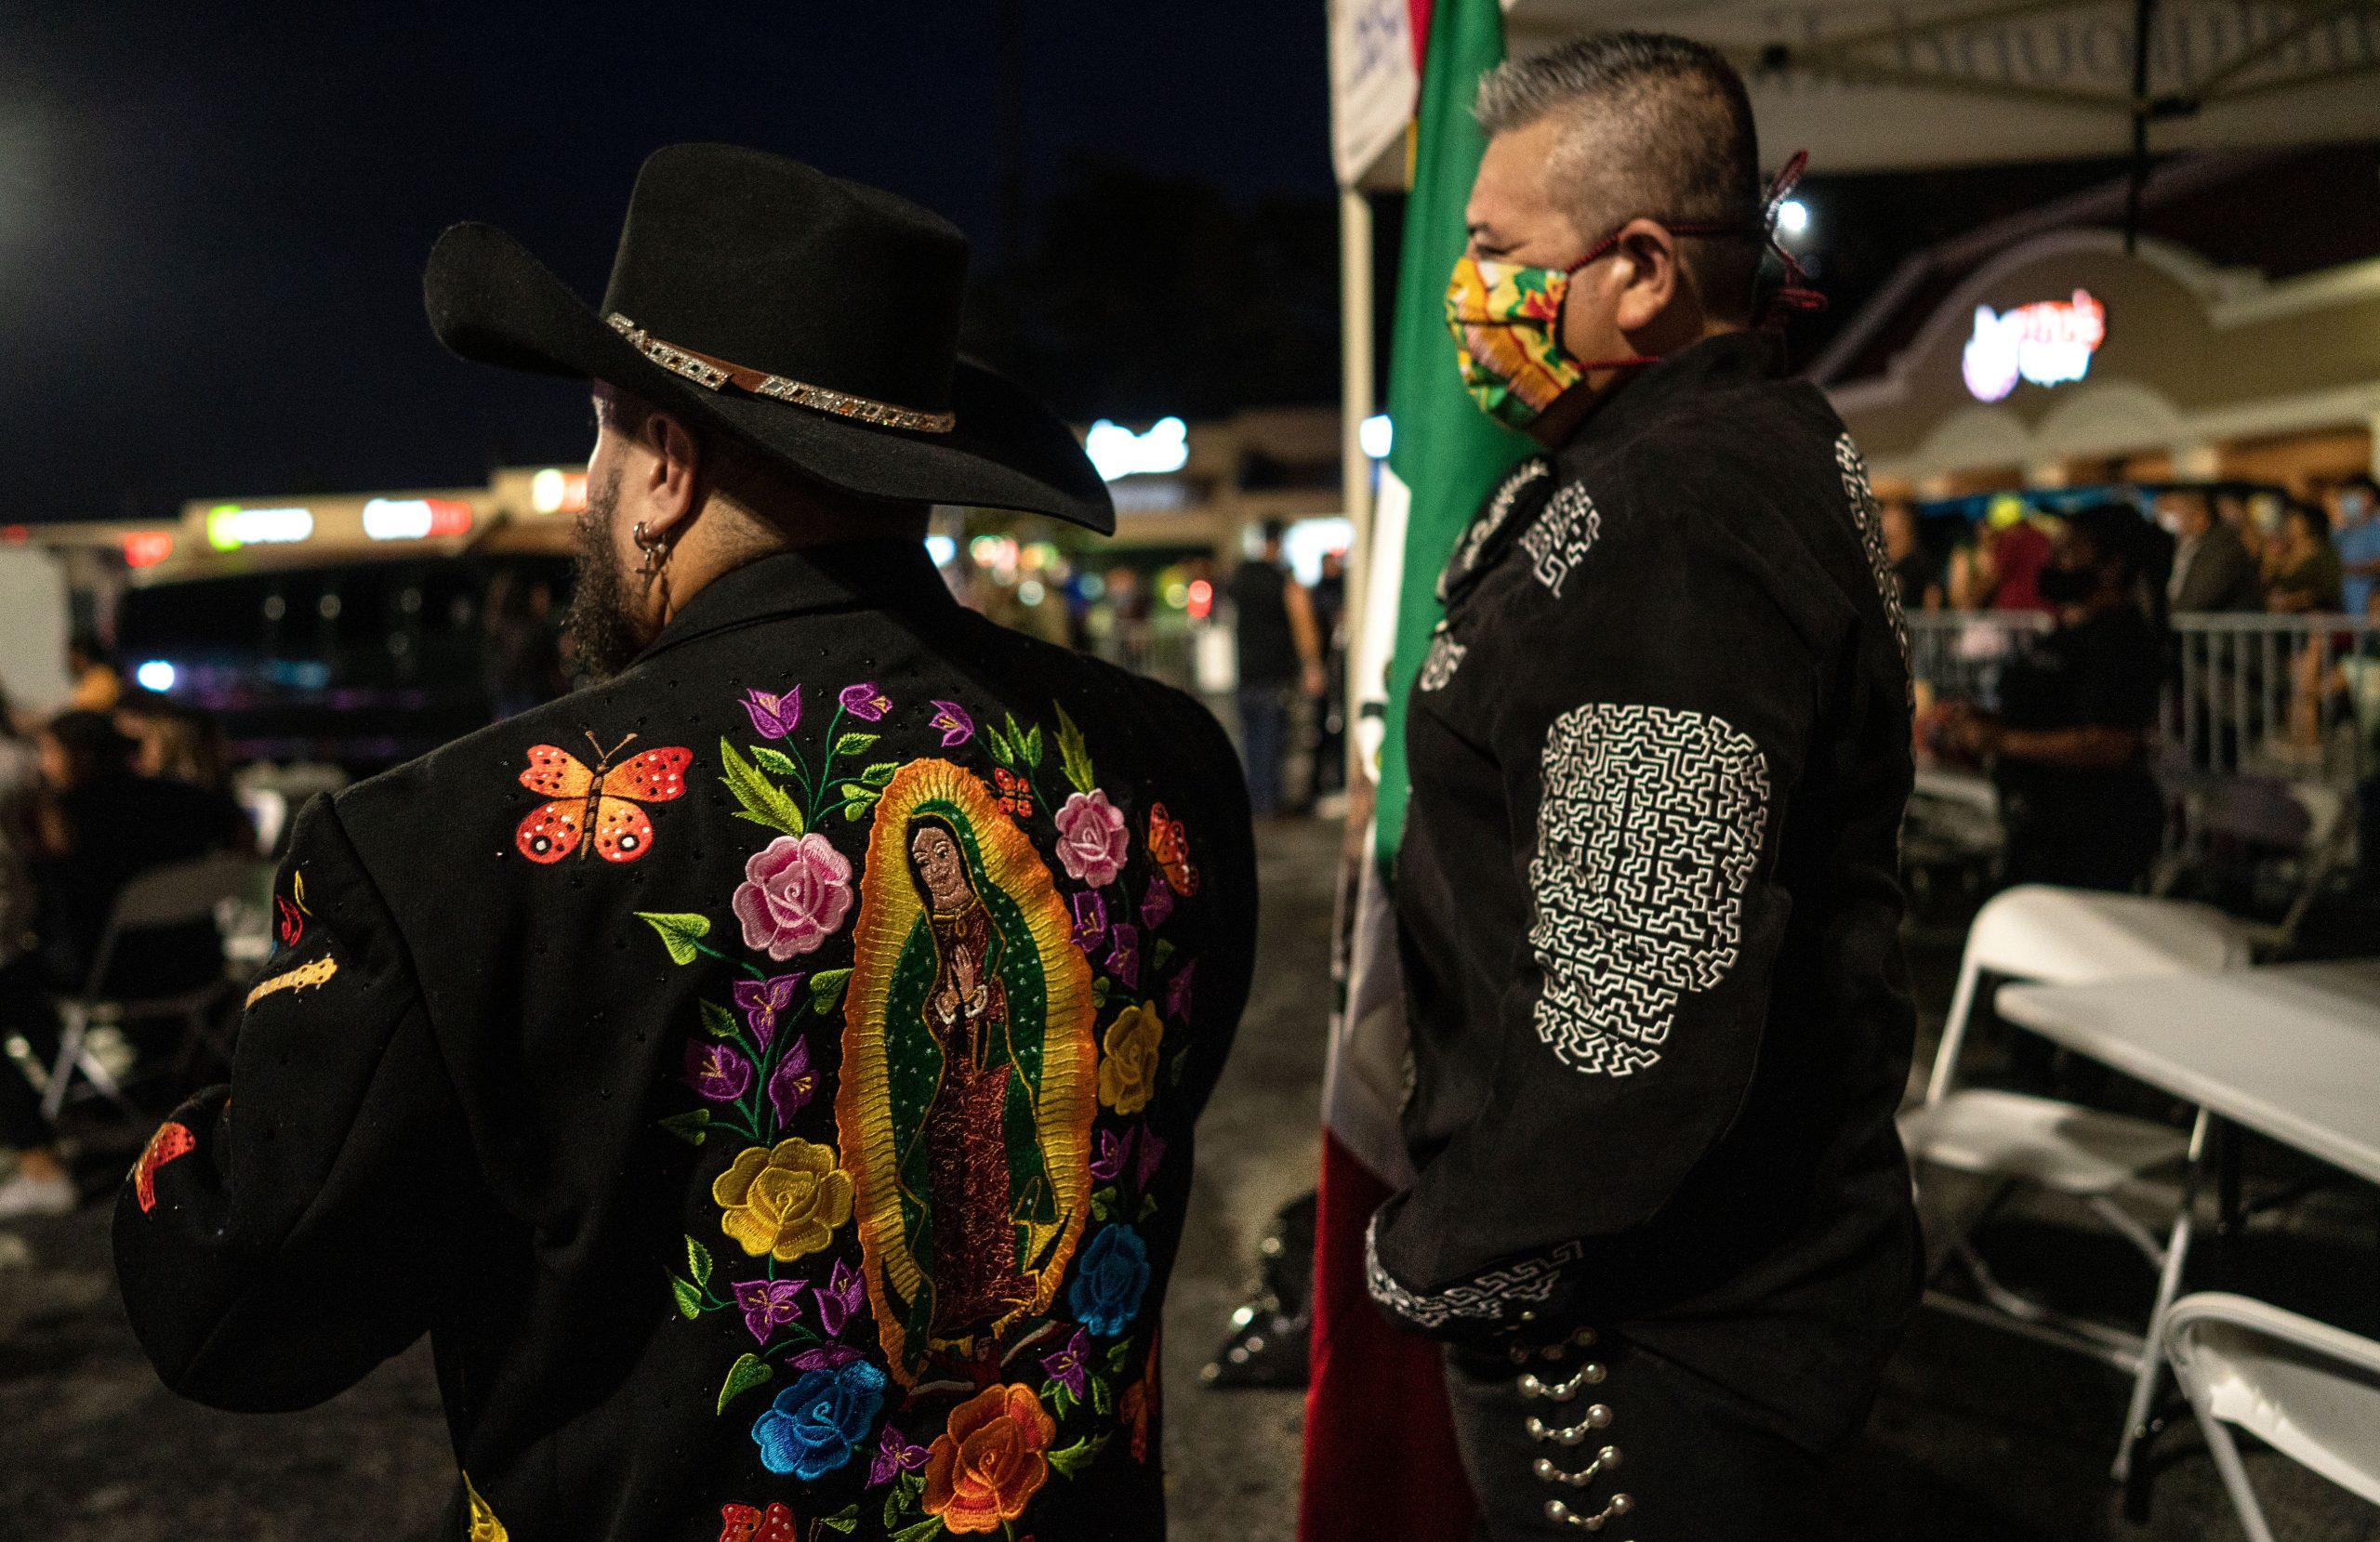 From left, Jose Vara dressed in a Manuel original coat and friend Aaron Rocha get ready to carry the Mexican flag on stage for the Mexican National Anthem during Mexican independence day at Plaza Mariachi. (Photo: John Partipilo)